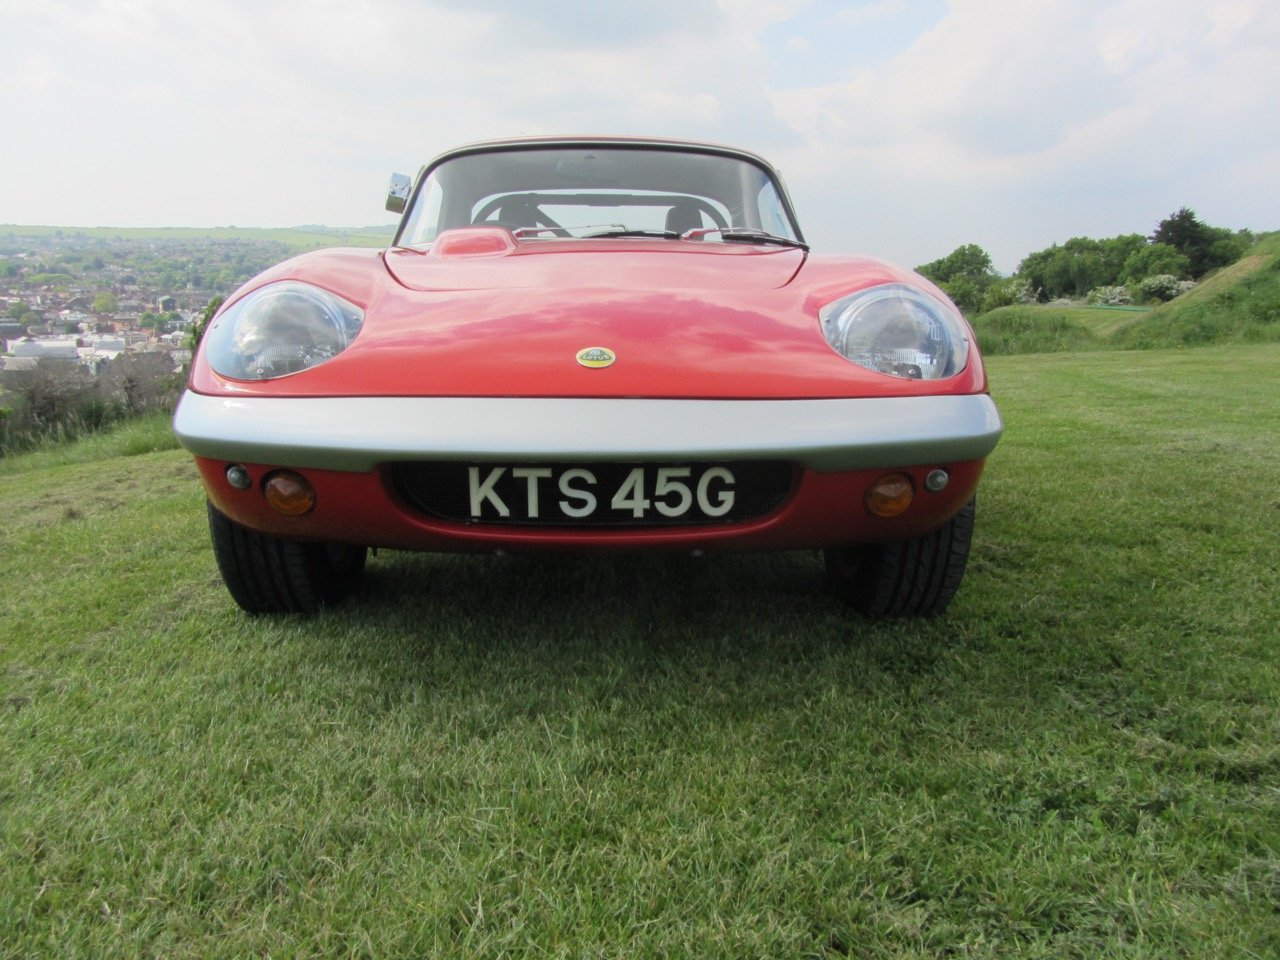 1969 Lotus Elan S4 SE FHC (26R evocation) For Sale (picture 2 of 6)